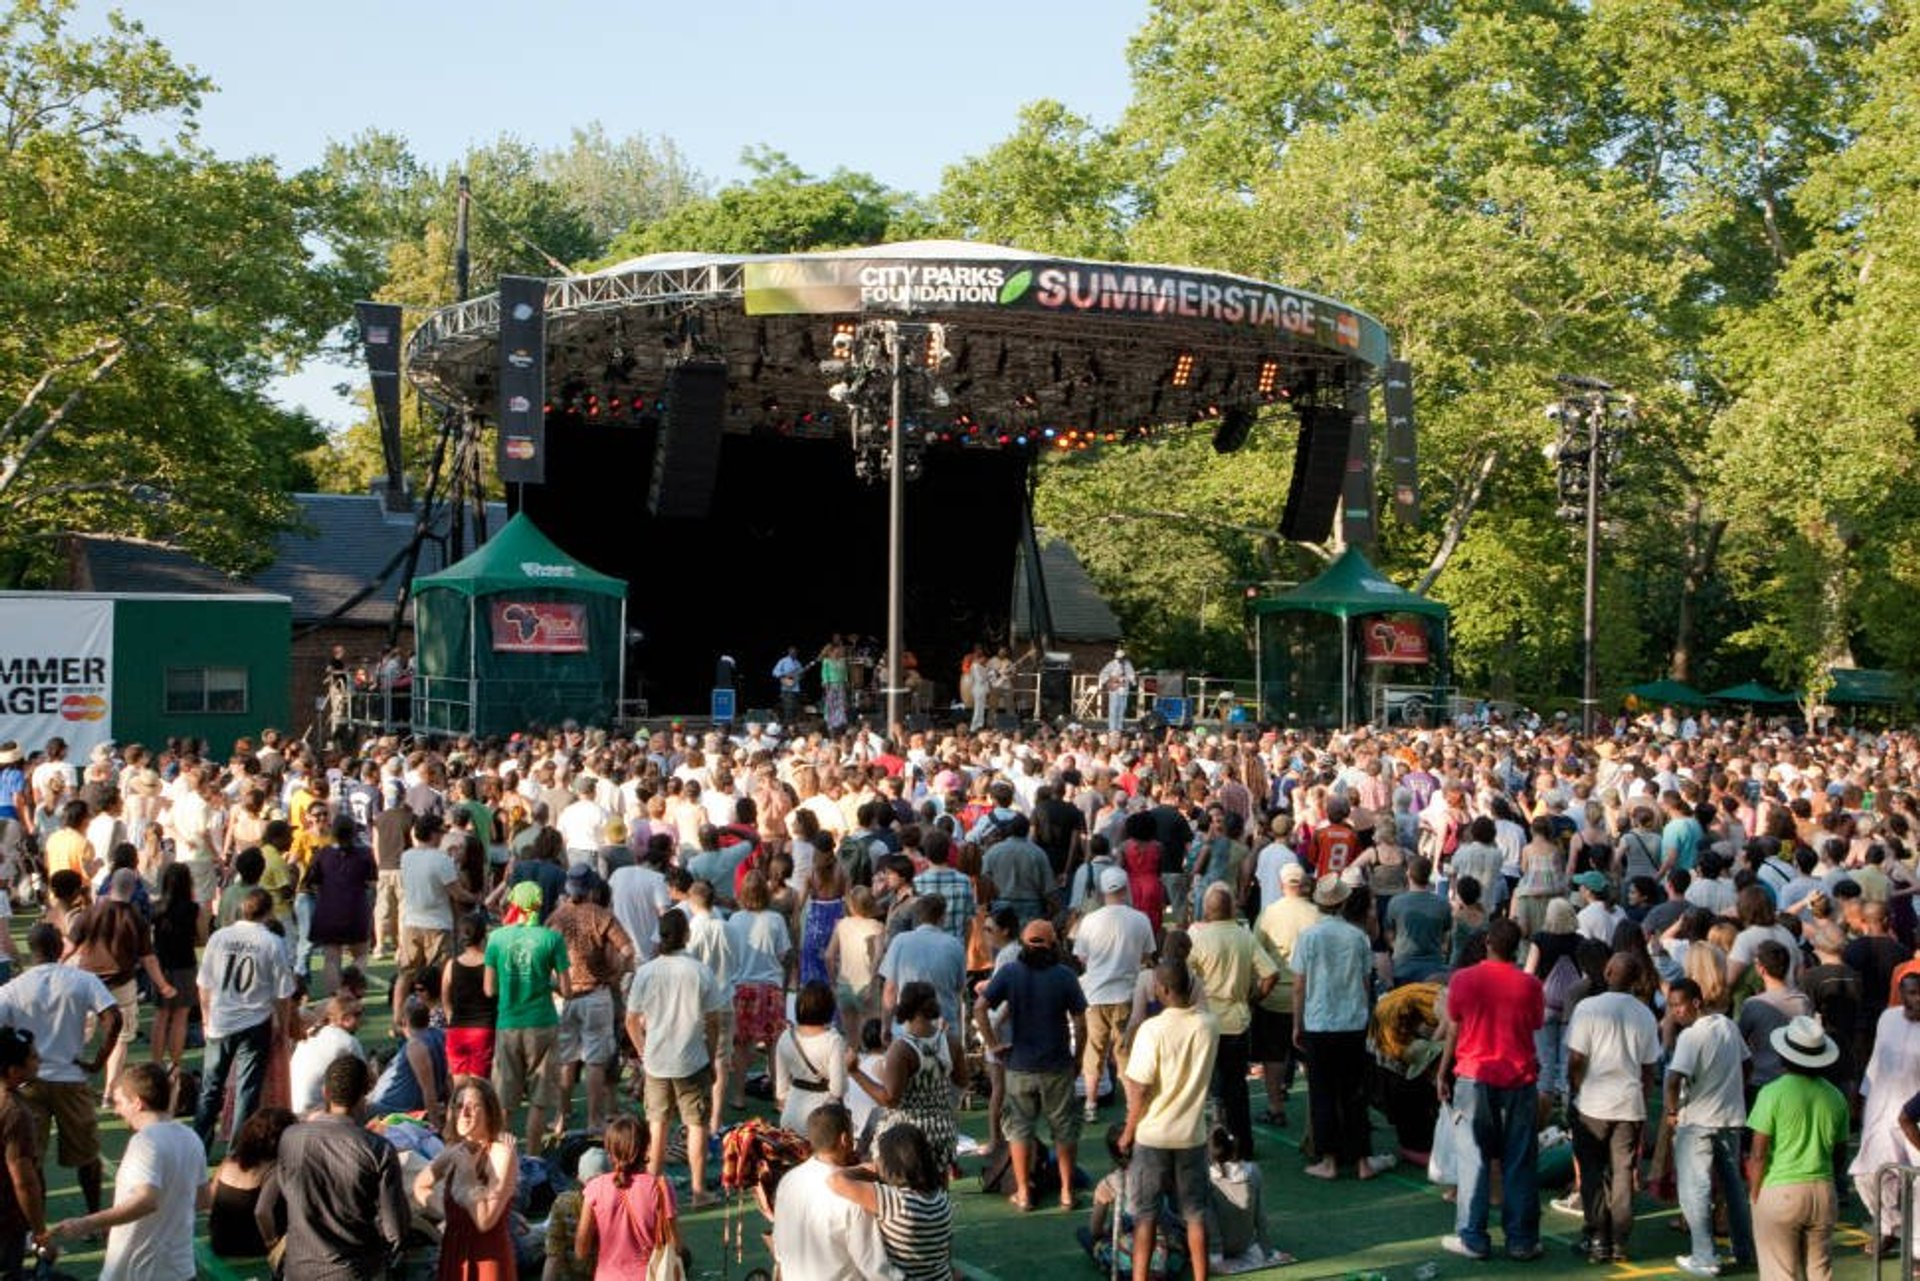 SummerStage in Central Park 2020